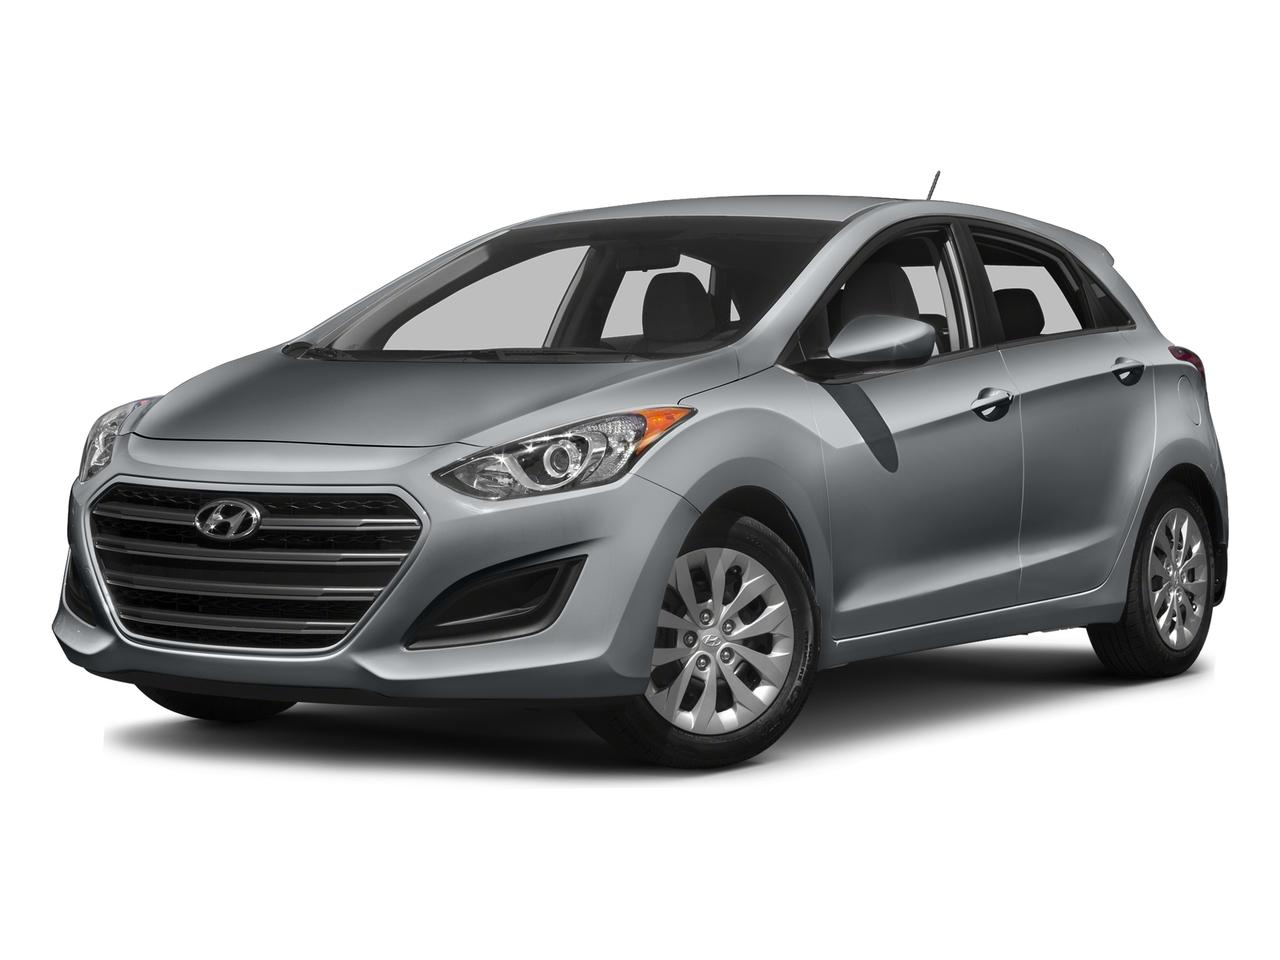 2016 Hyundai Elantra GT Vehicle Photo in Smyrna, DE 19977